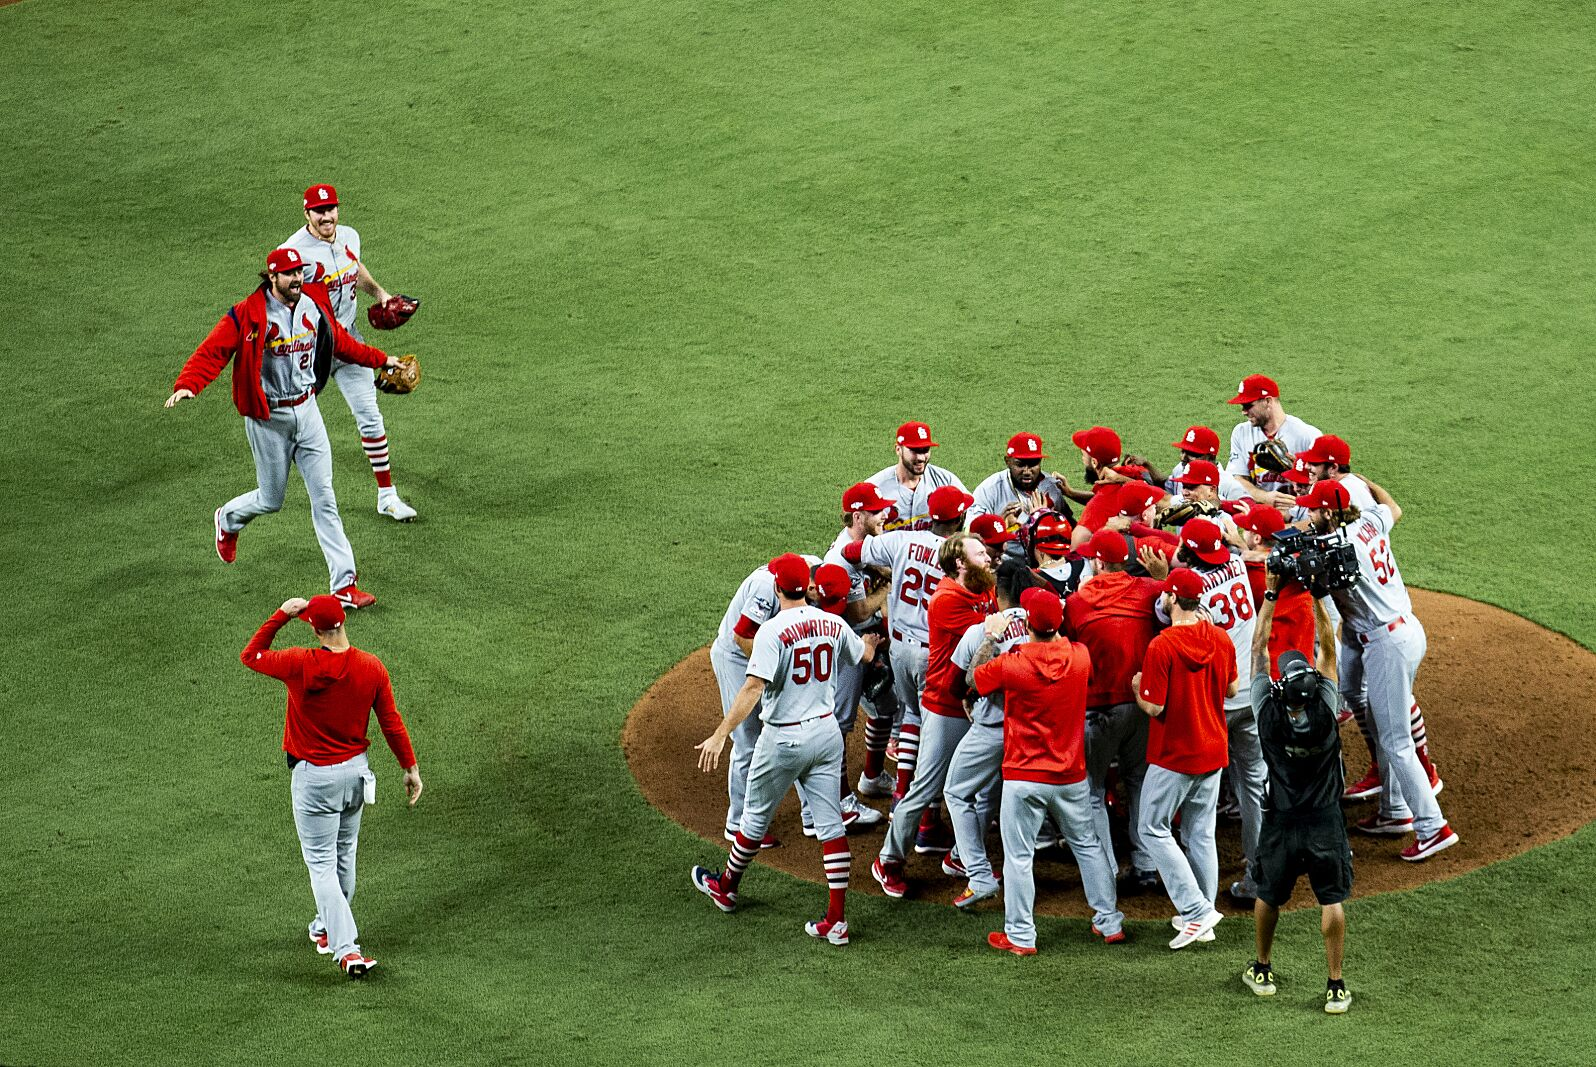 St. Louis Cardinals: Four moves to get Cards back in the NLCS